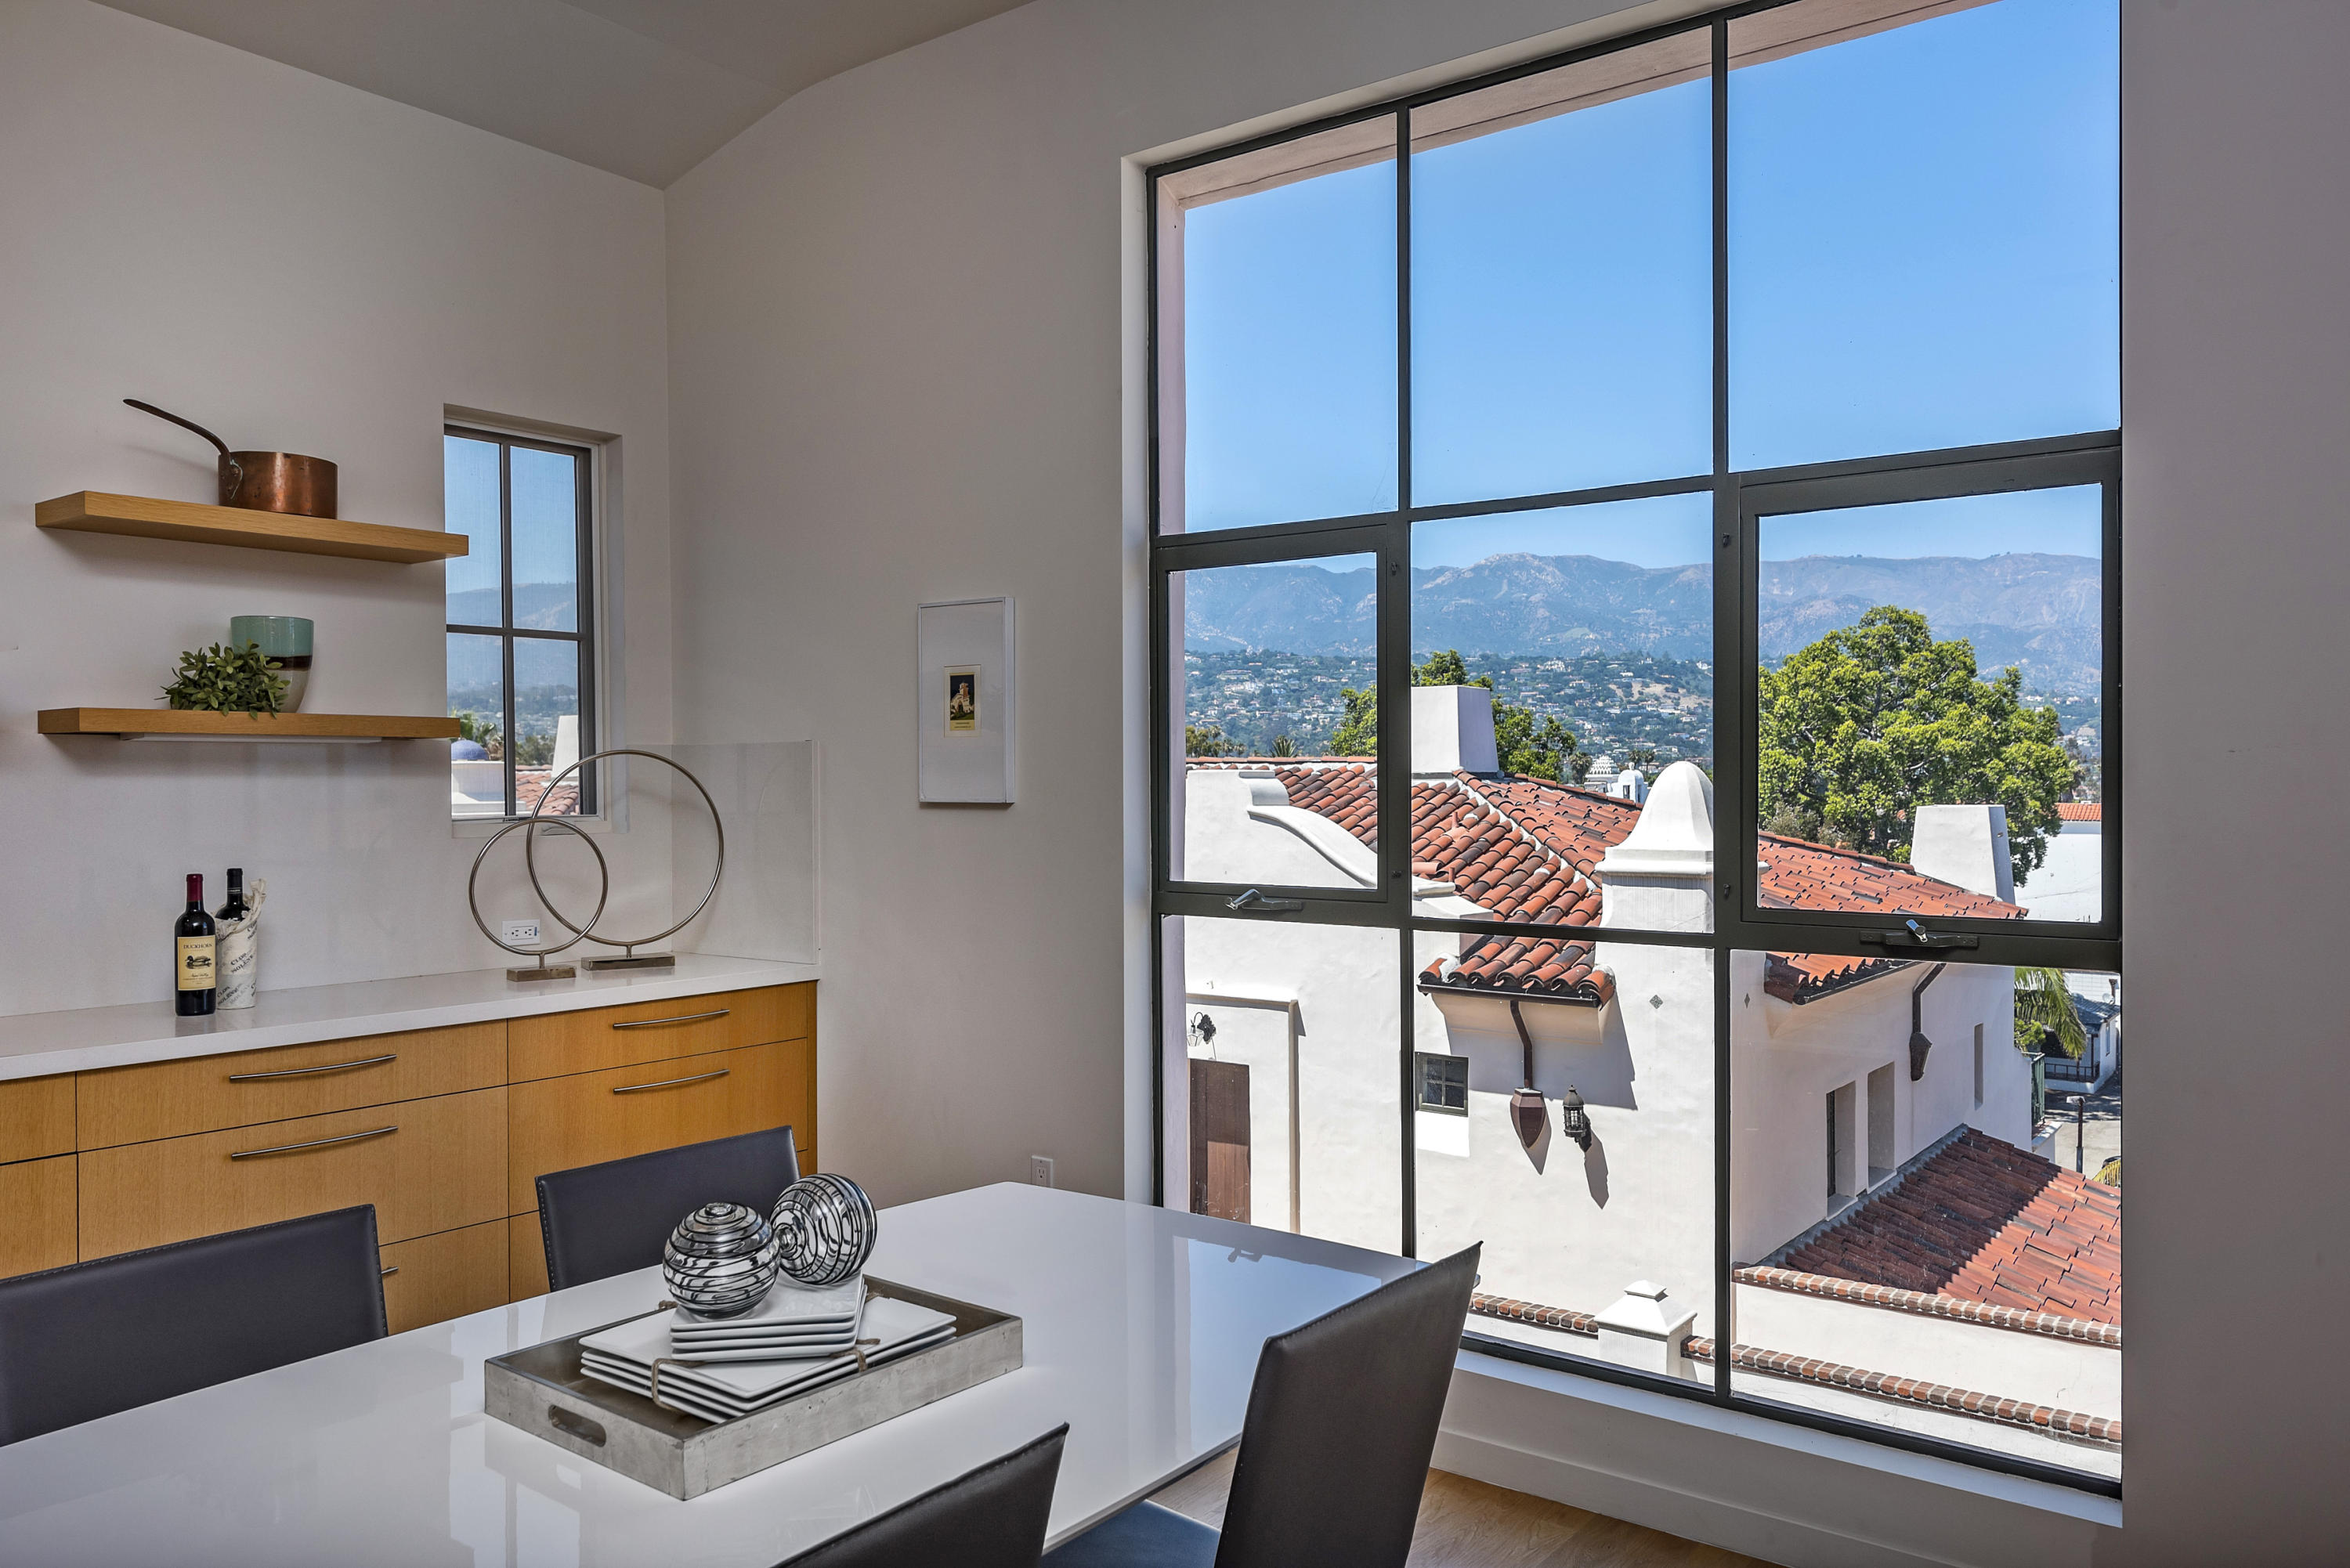 Property photo for 401 Chapala St #402 Santa Barbara, California 93101 - 18-2340